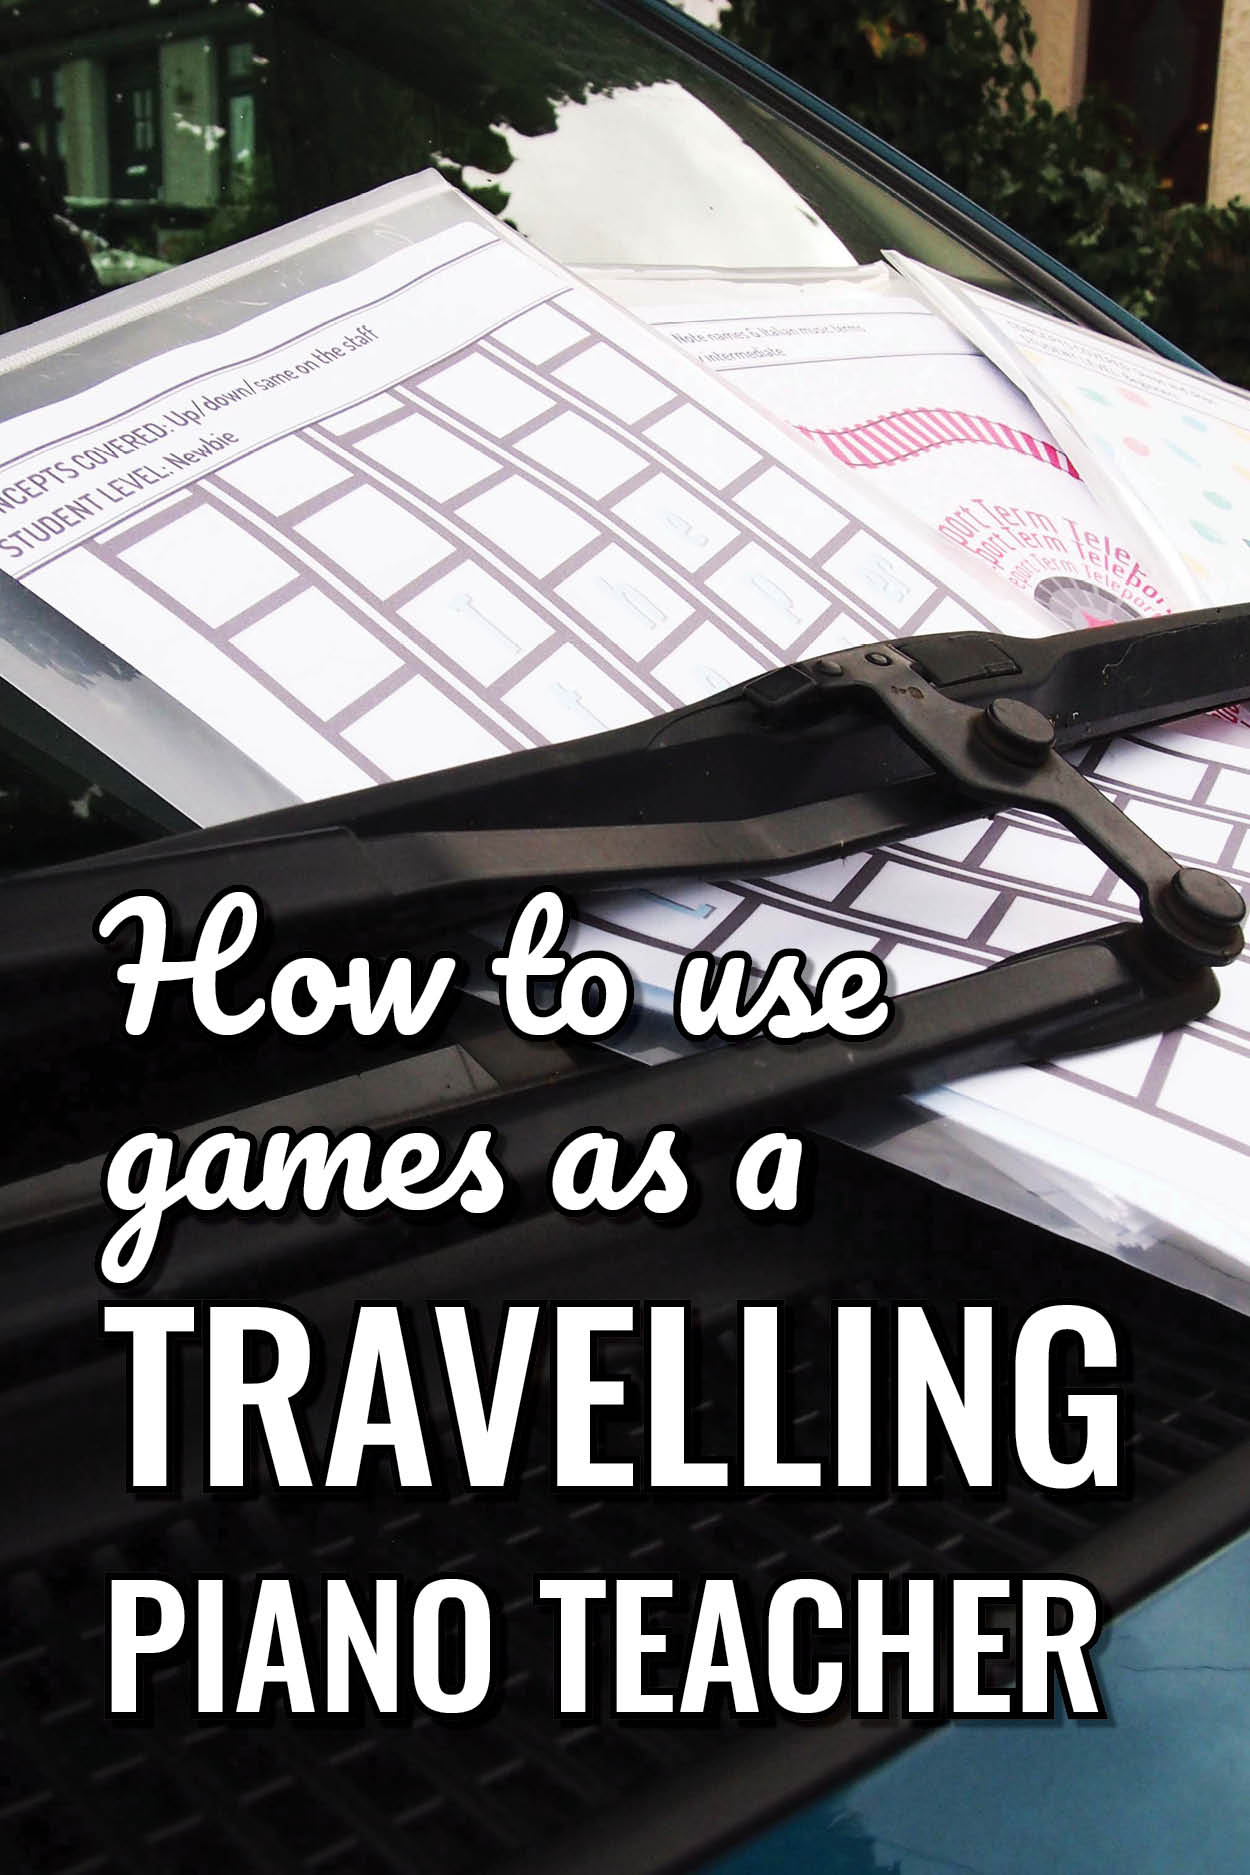 How to plan games for piano lessons – for travelling piano teachers